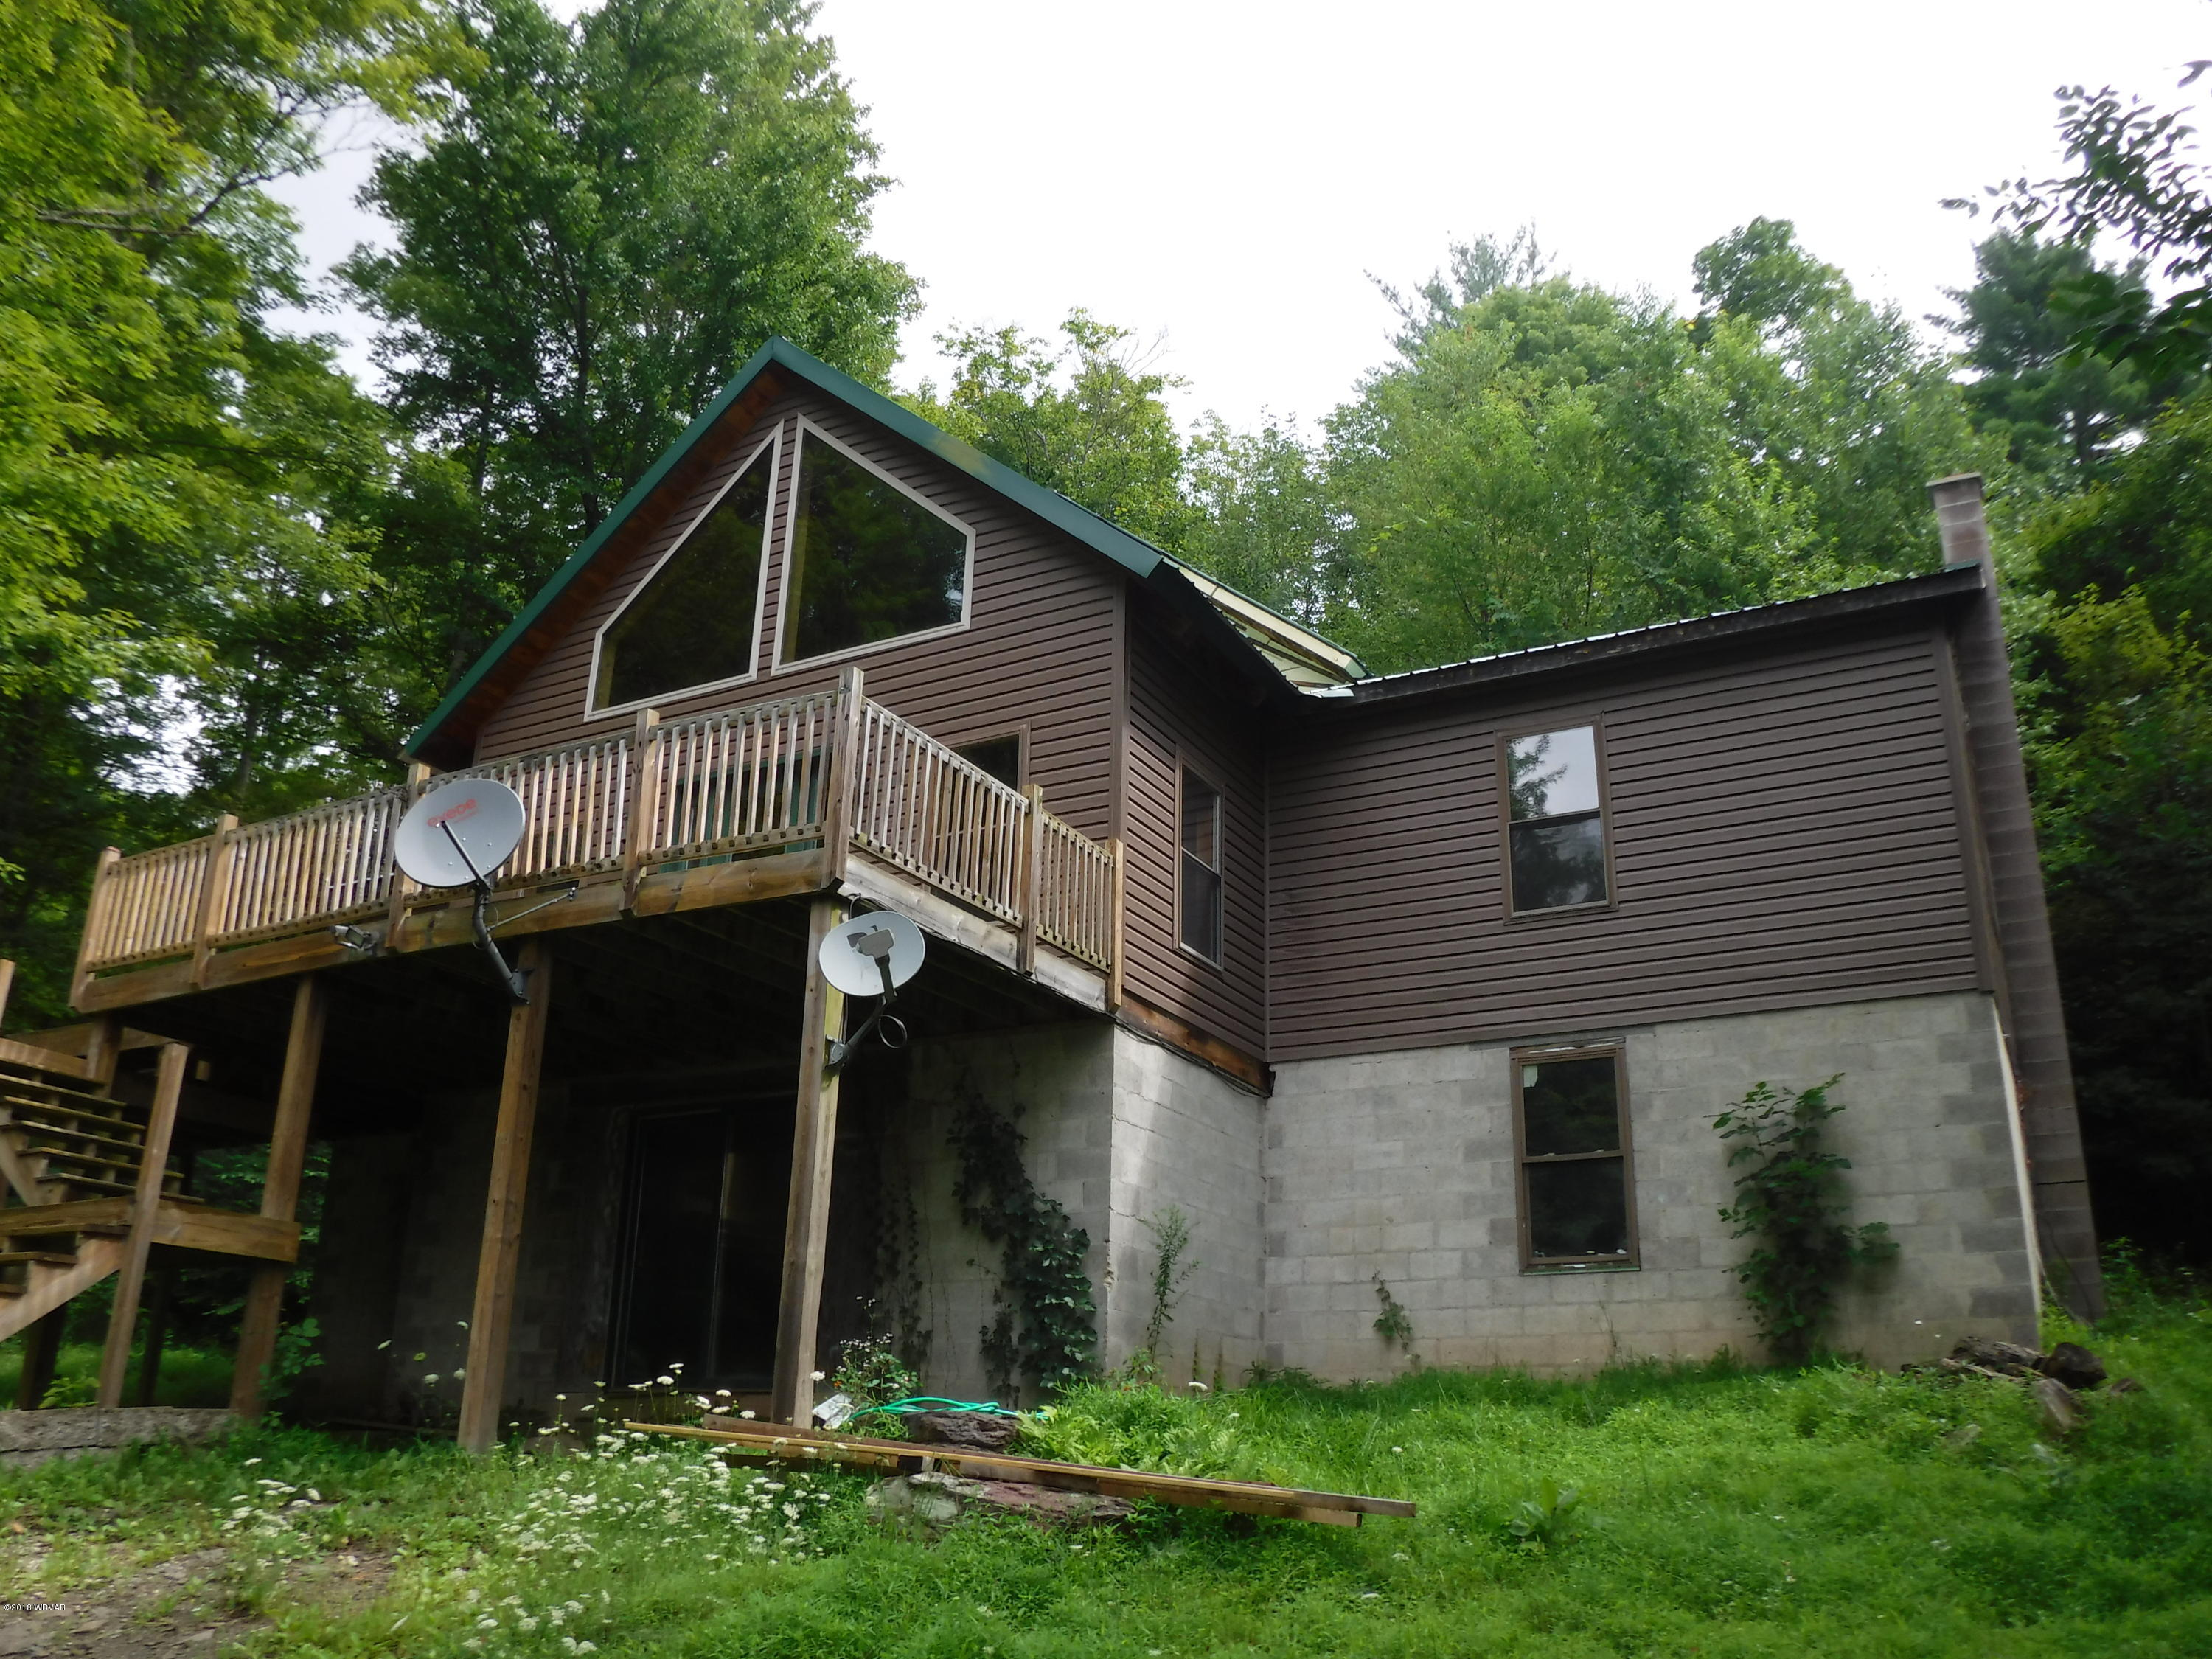 141 PLEASANT VALLEY ROAD,Dushore,PA 18614,3 Bedrooms Bedrooms,2 BathroomsBathrooms,Residential,PLEASANT VALLEY,WB-81713